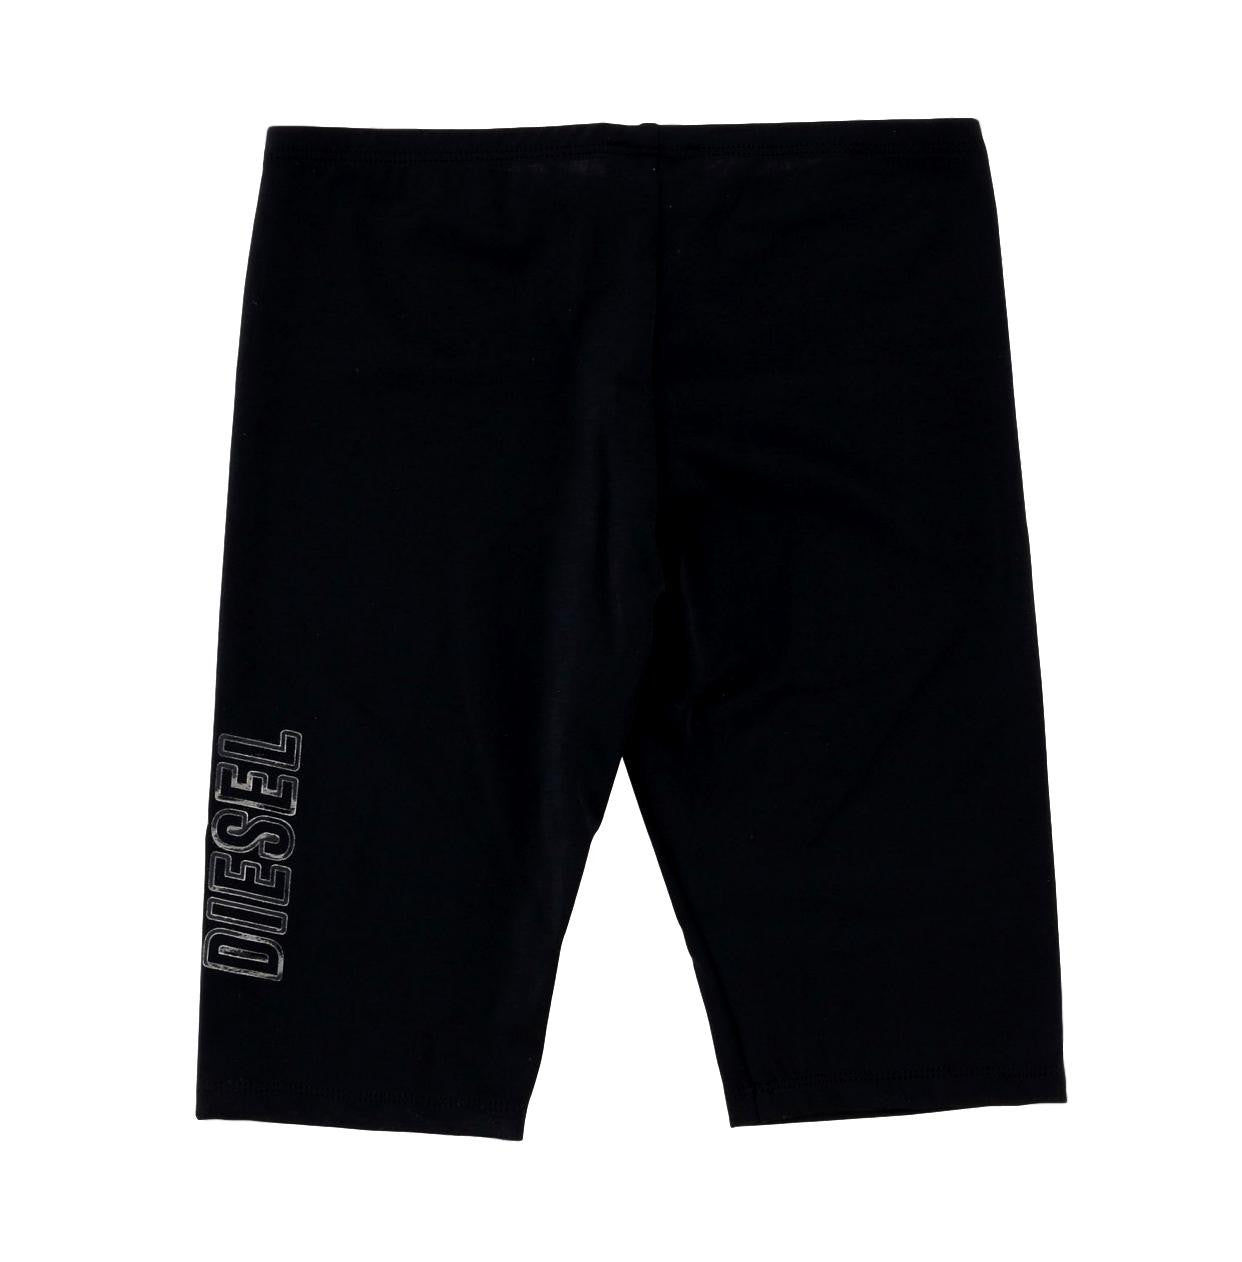 Shorts Diesel Kids - Ballantrae